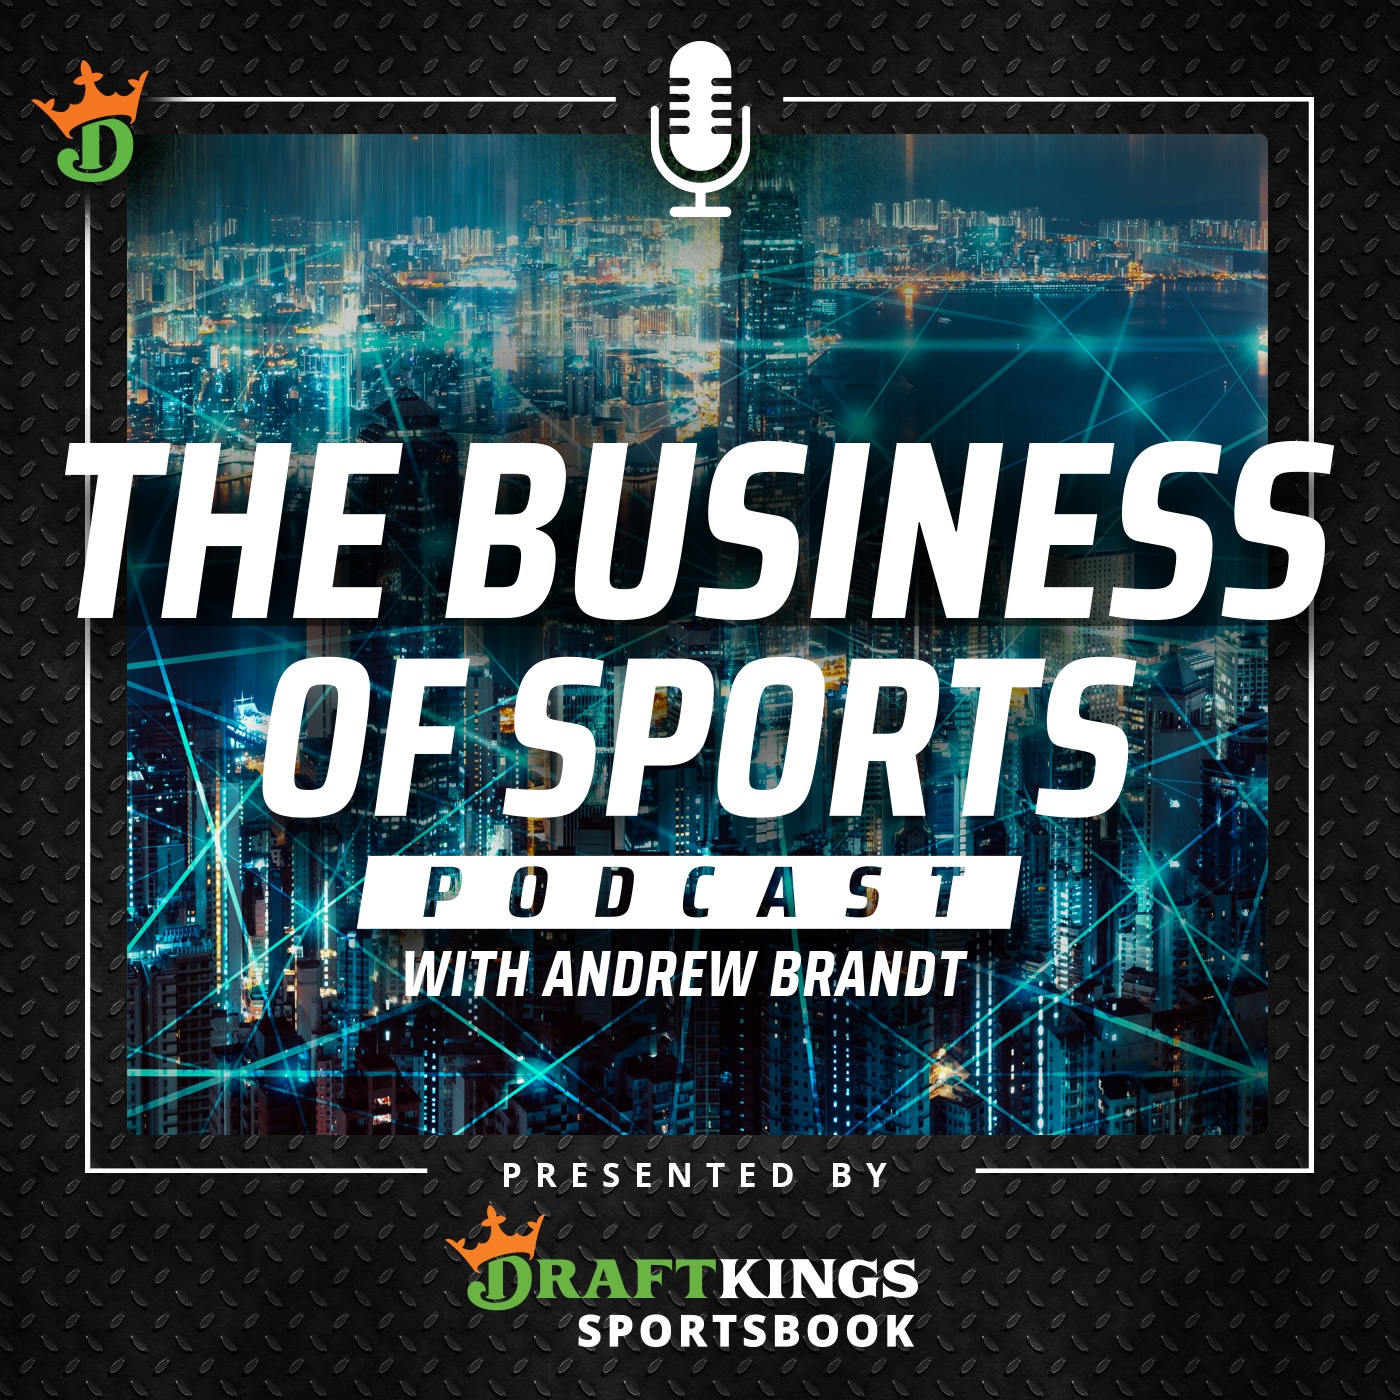 The Business of Sports Podcast with Andrew Brandt